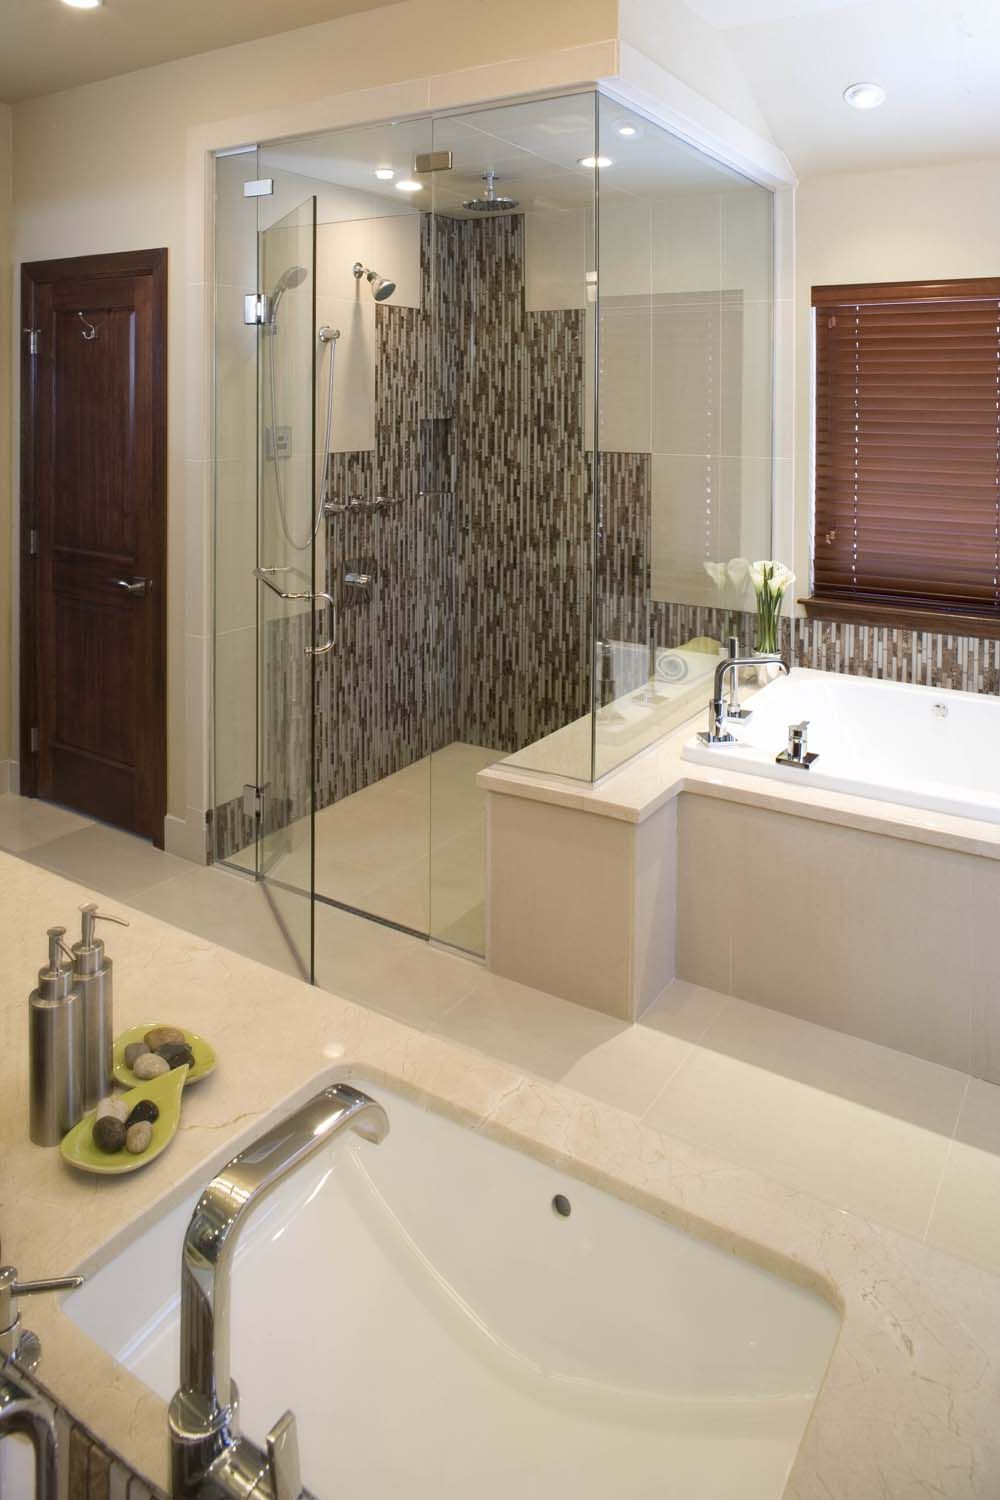 By using a door trench drain here you can have this fab shower, and ...